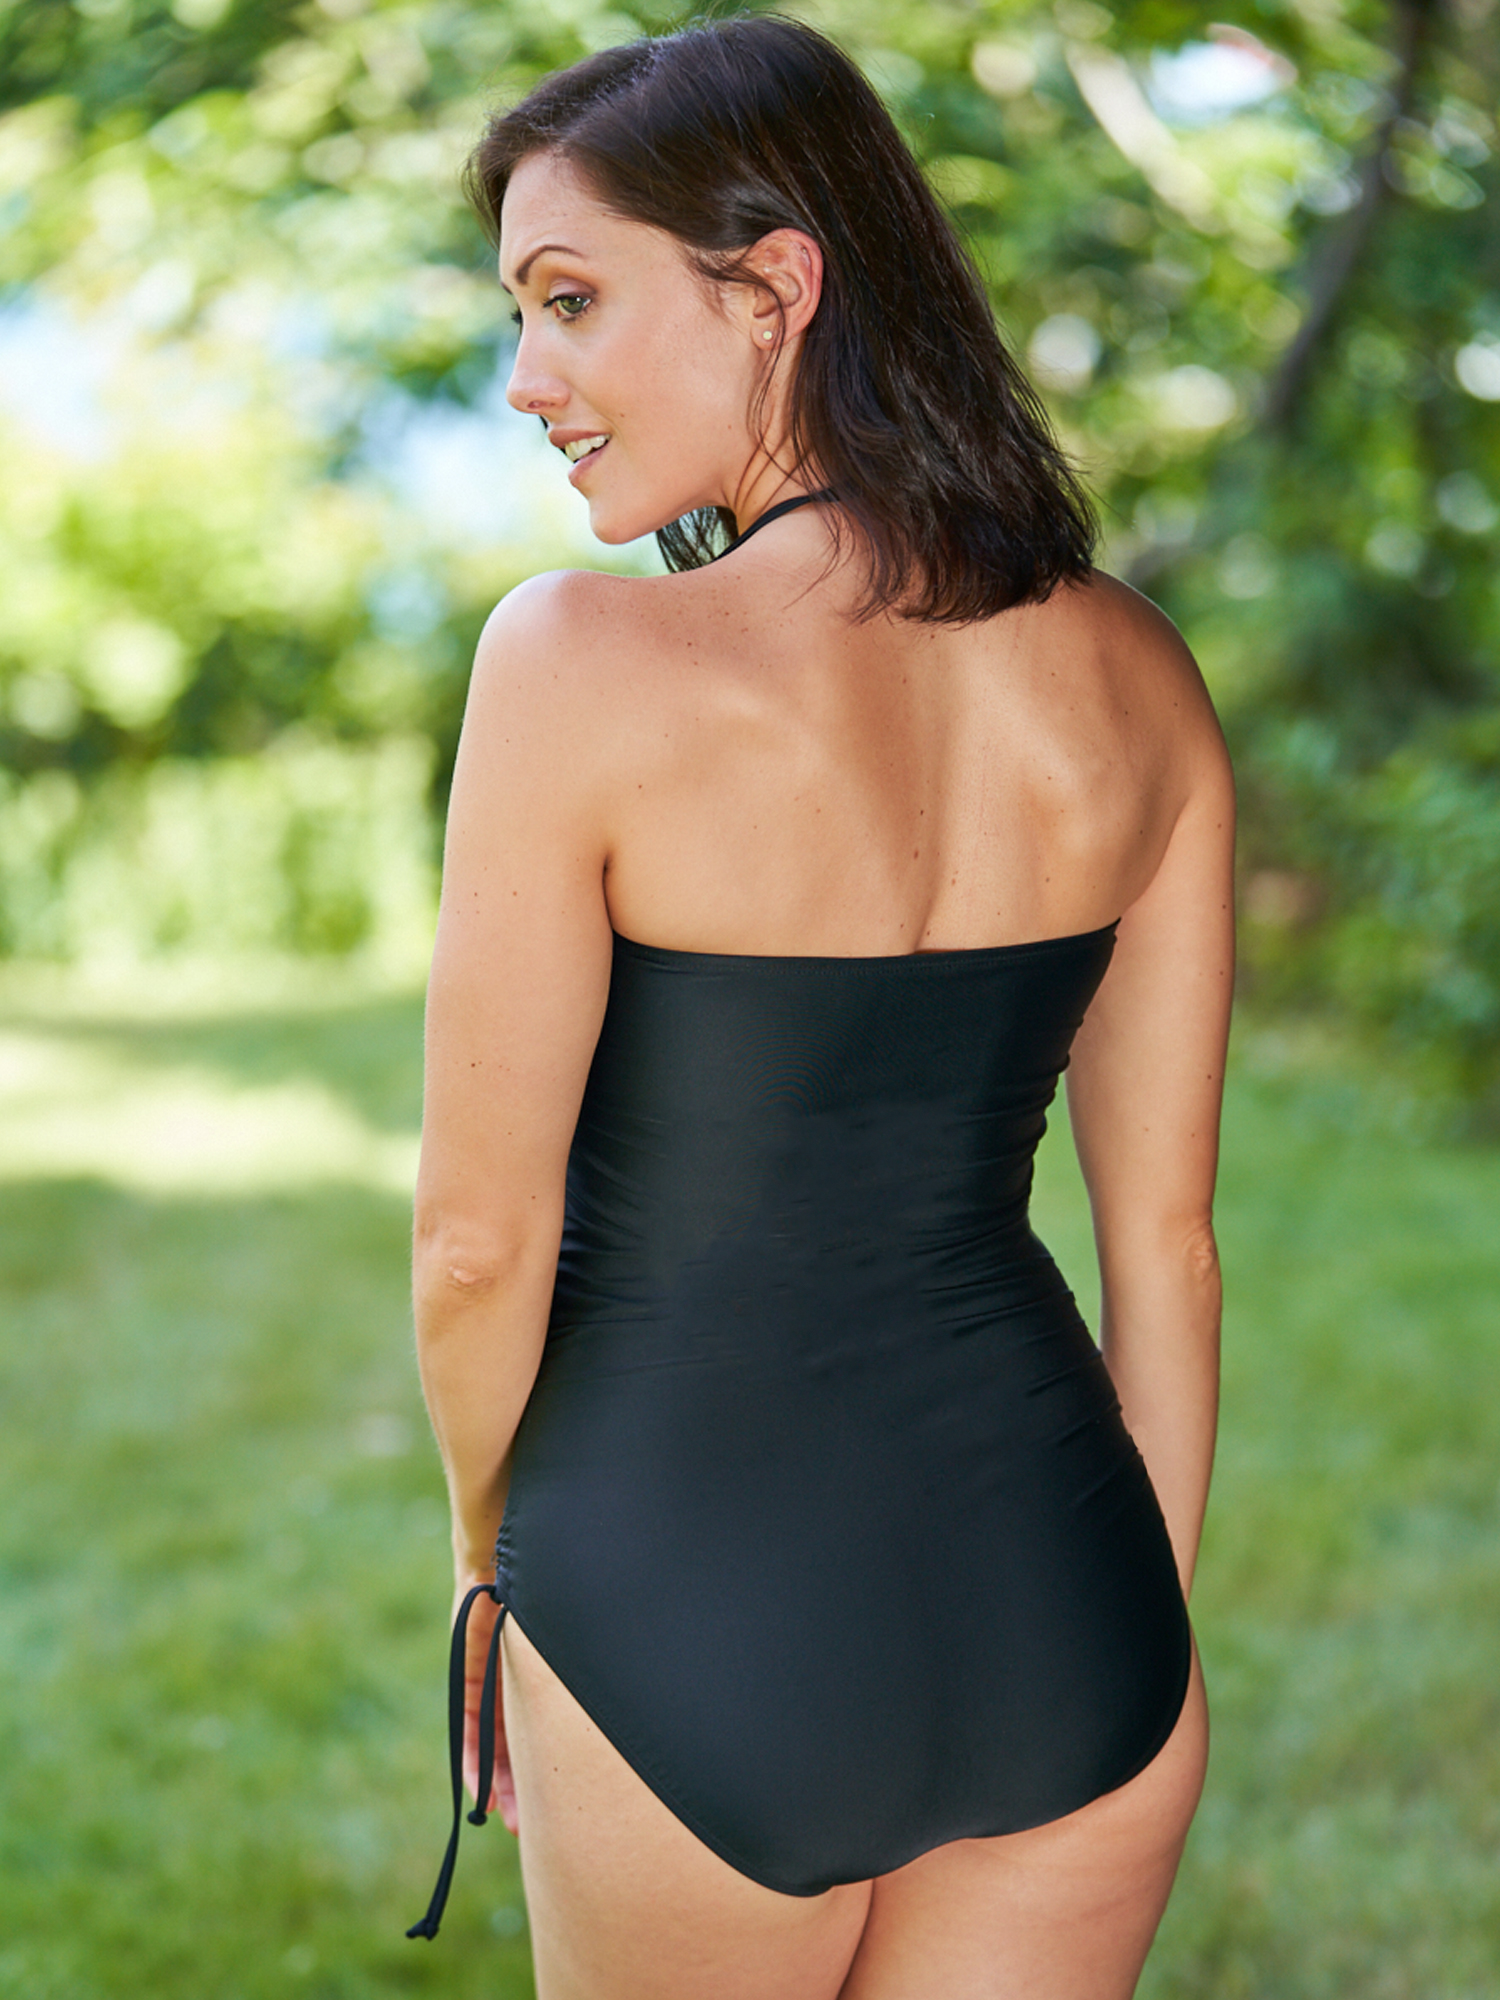 1b7948c739 Popina - The World s Greatest Swimwear Boutique that happens to be ...